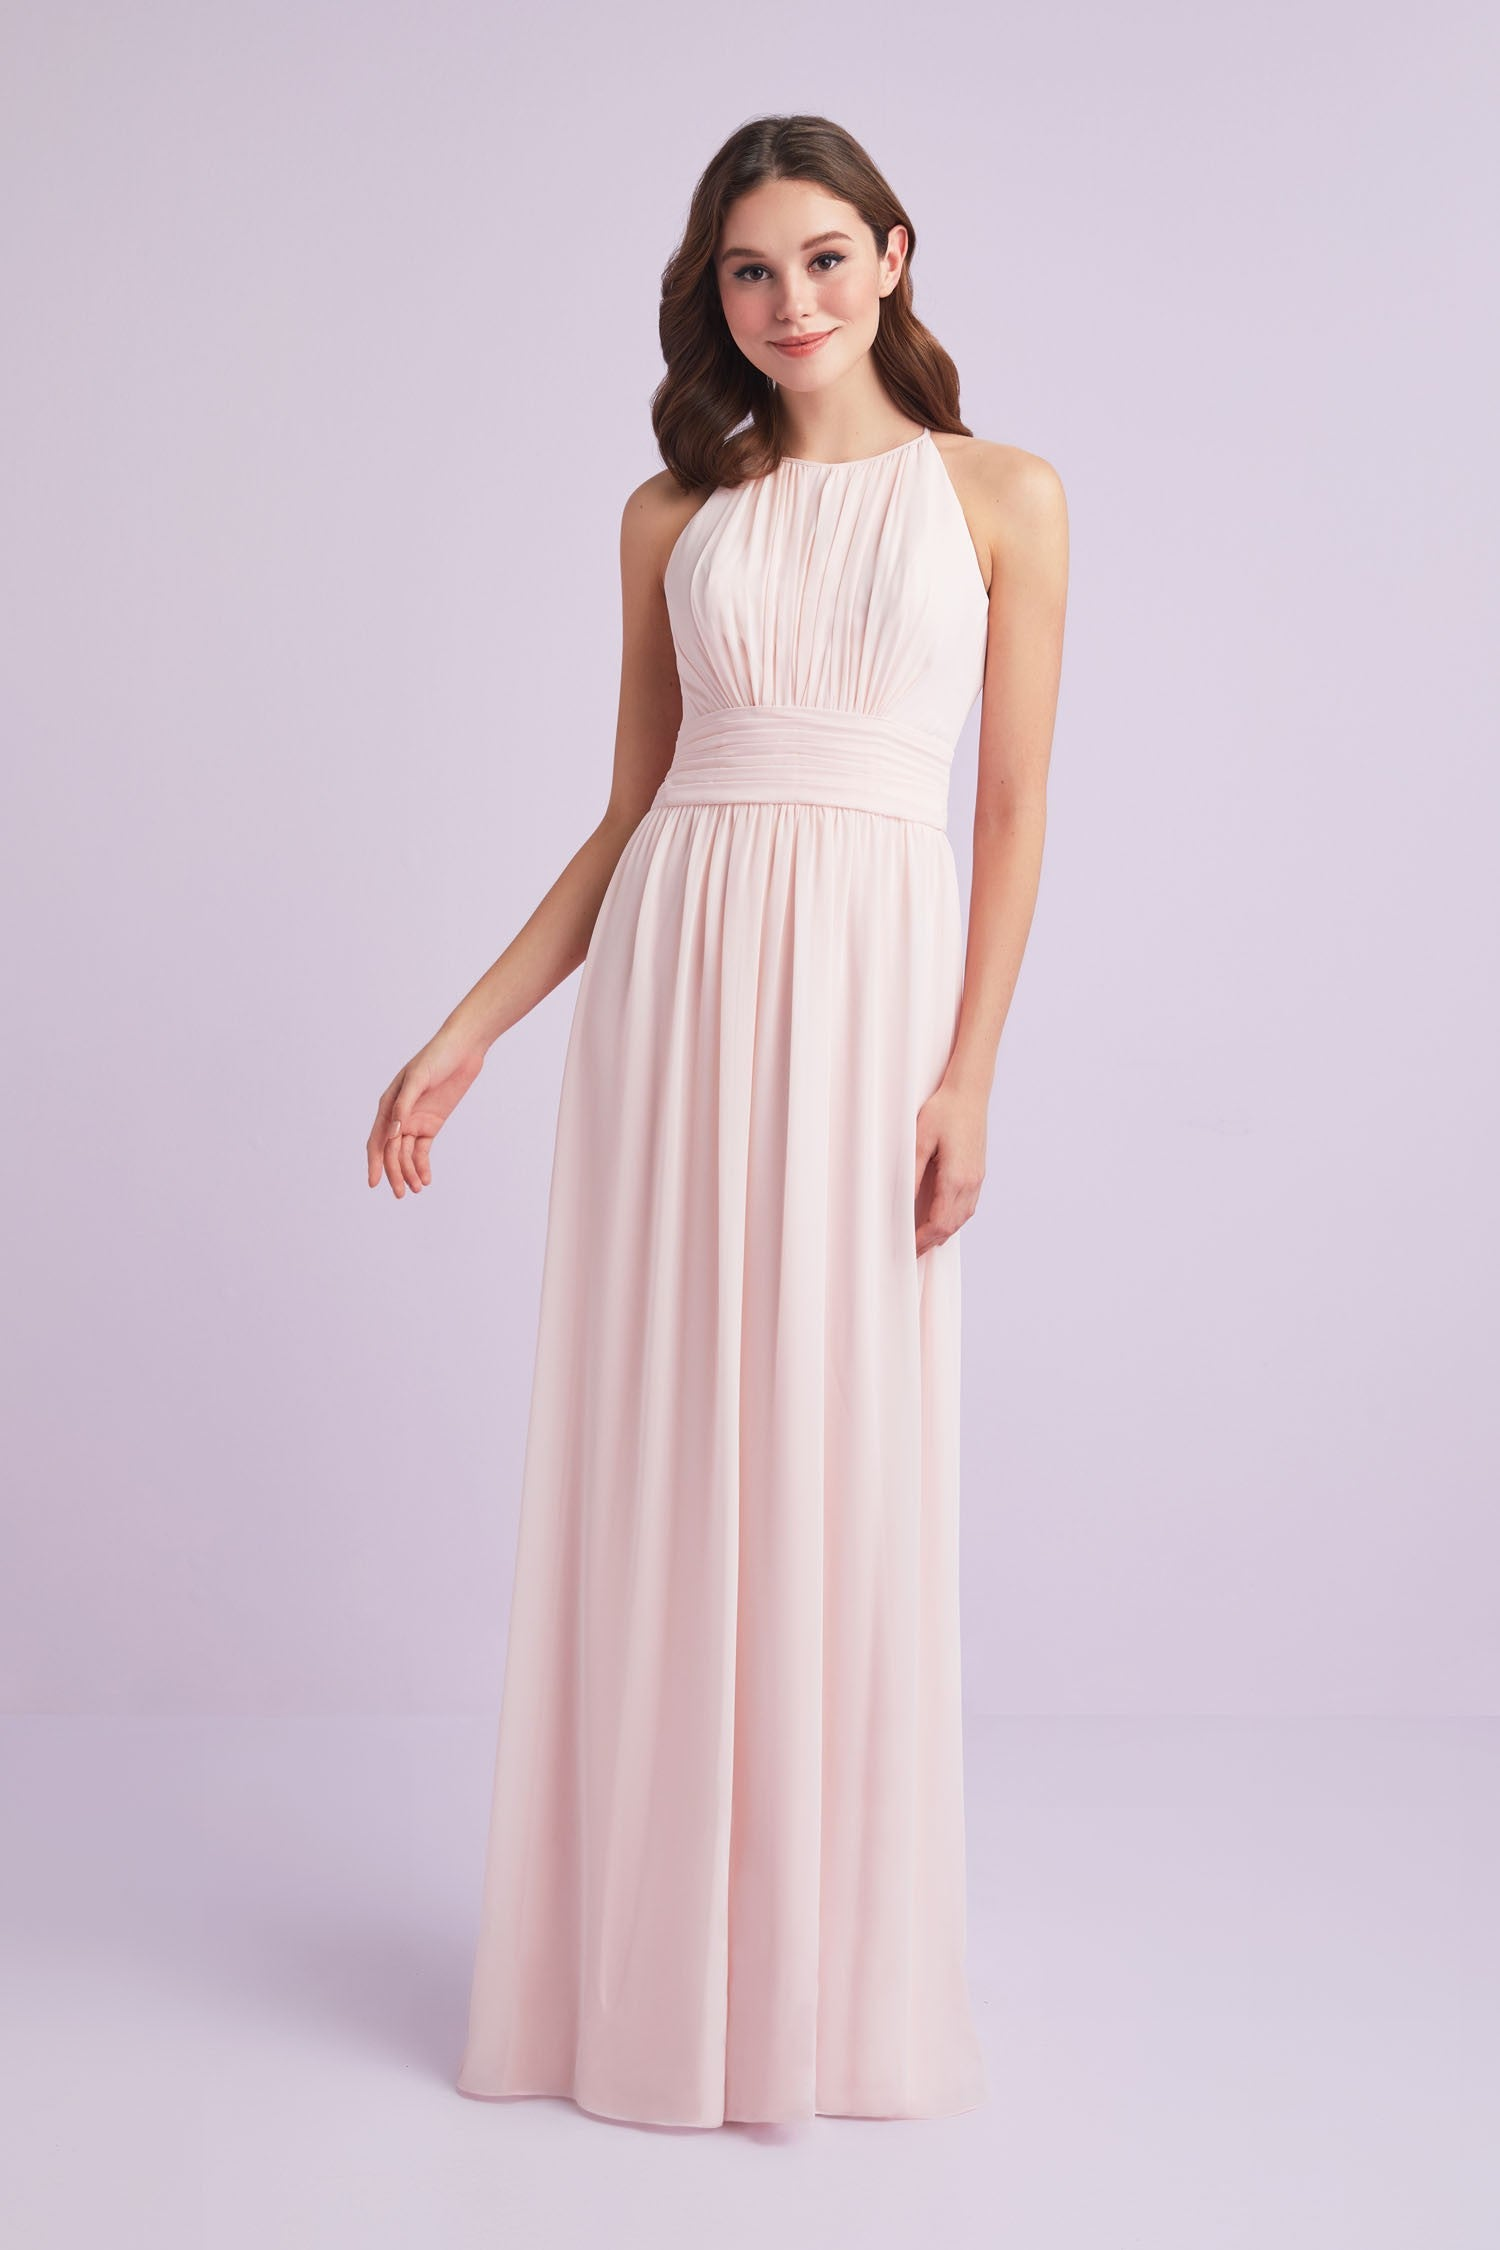 6e2c7e92170e Affordable Bridesmaids Dresses Online | Oleg Cassini Store